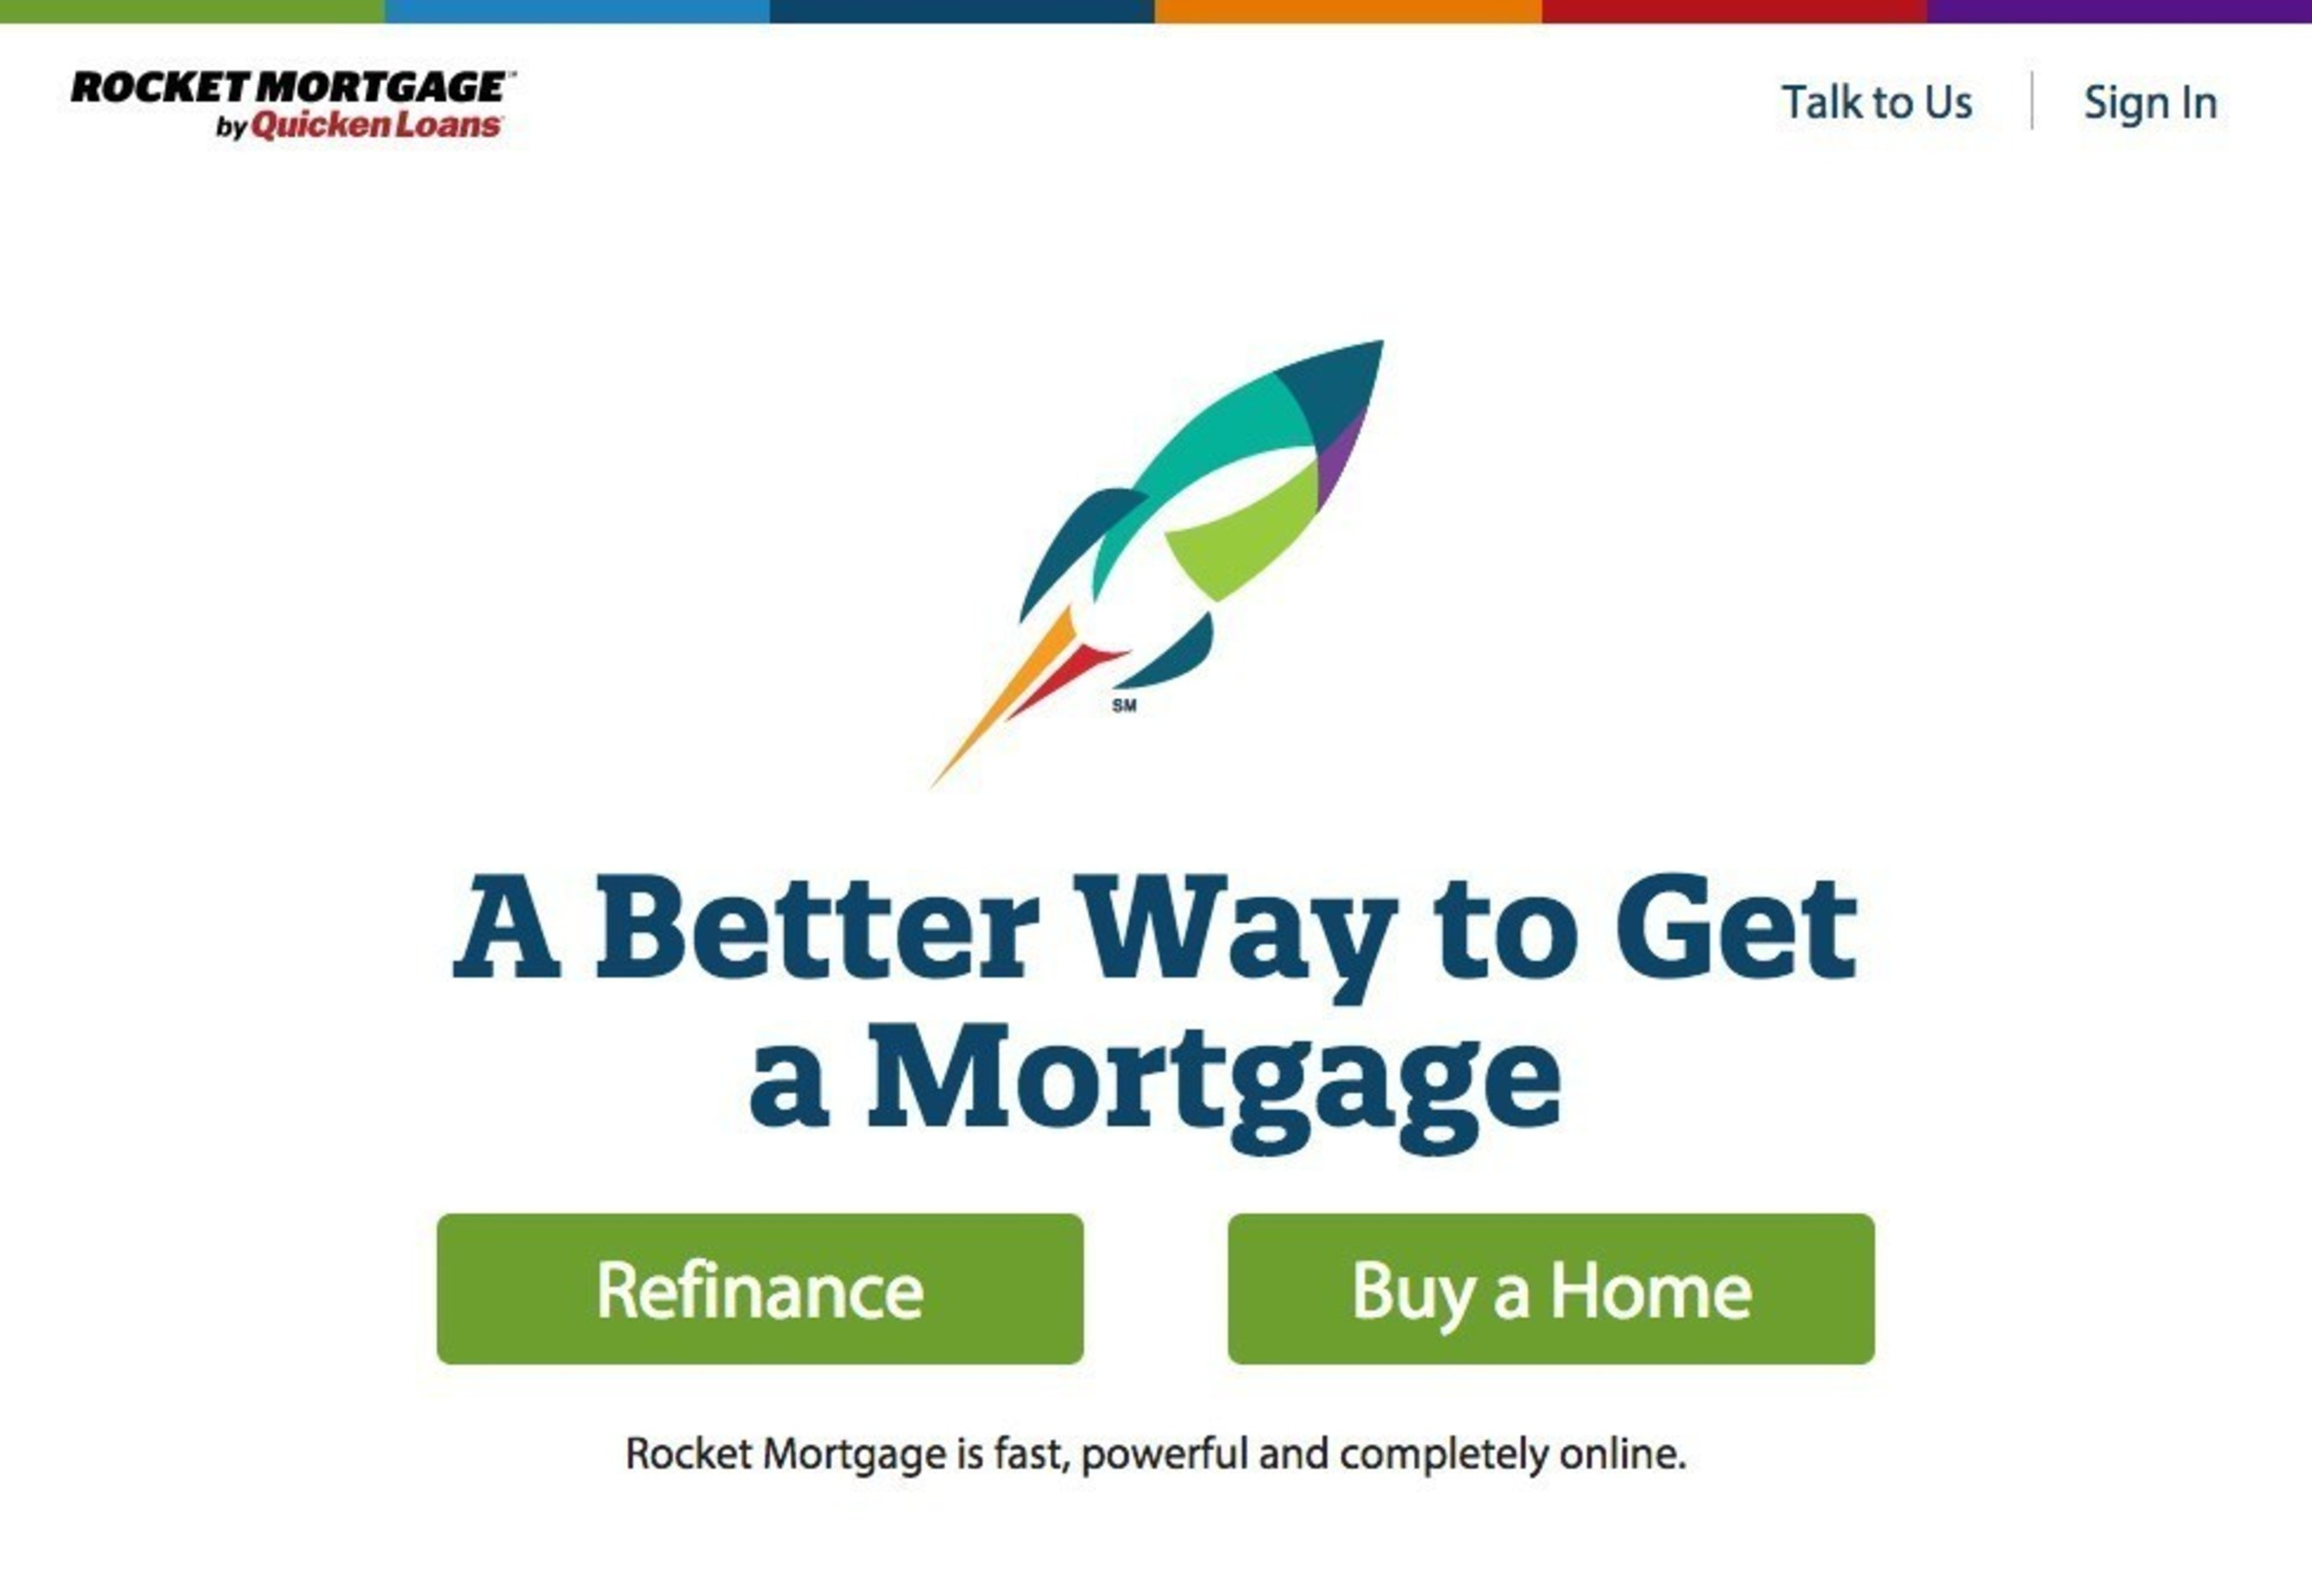 Quicken Loans Launches Revolutionary End-to-End Online